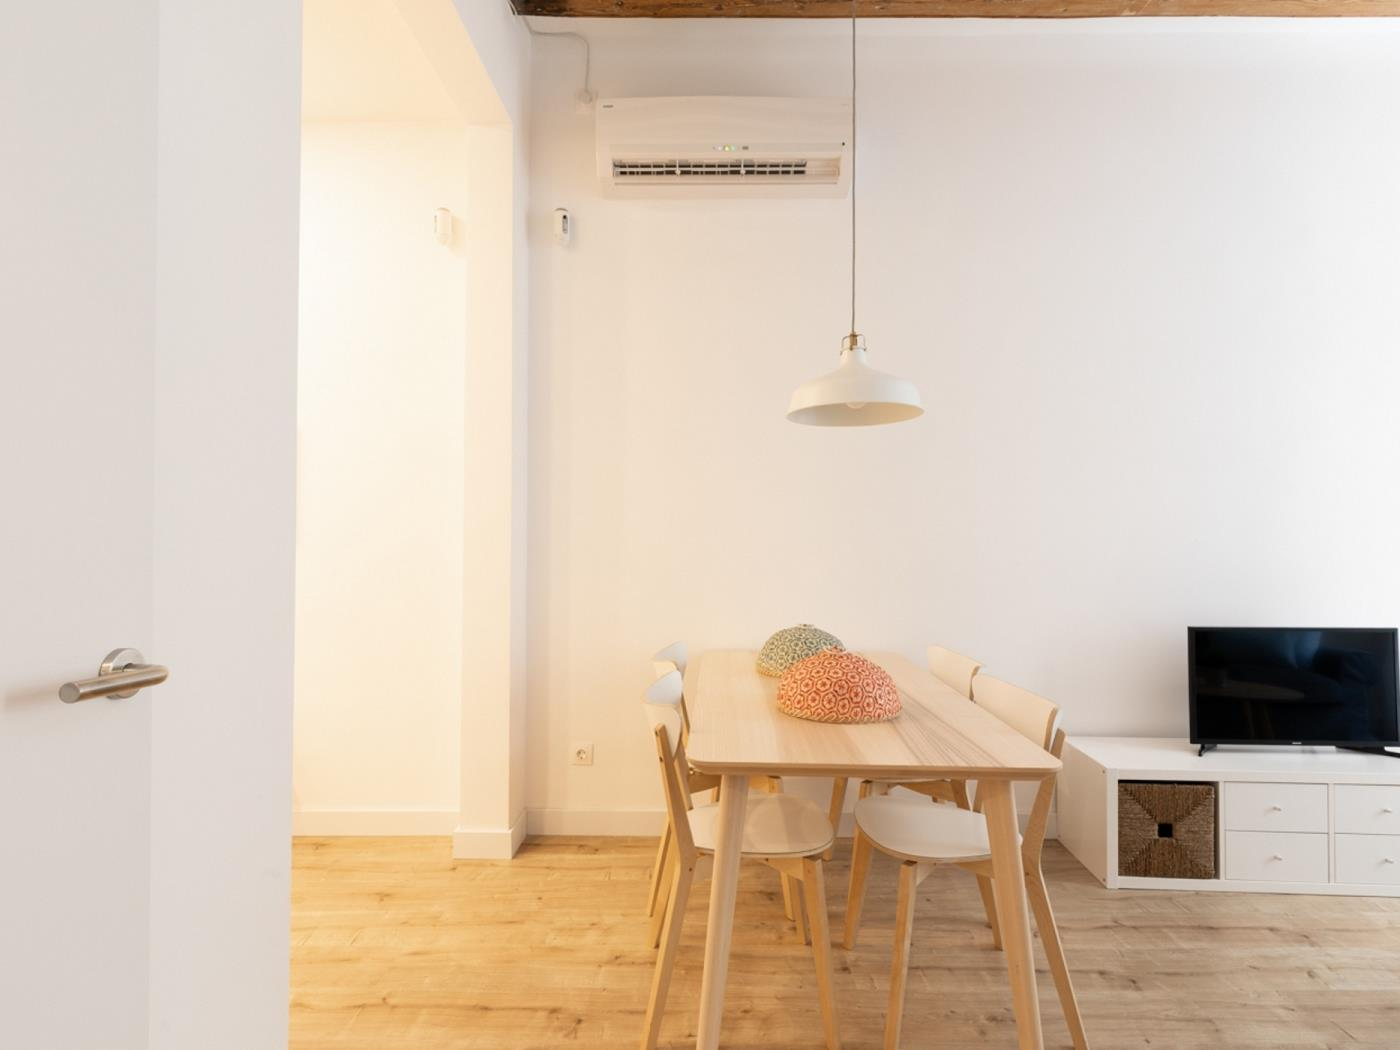 Cozy and spatious apartment ideal for a couple close to the city centre - My Space Barcelona Apartments